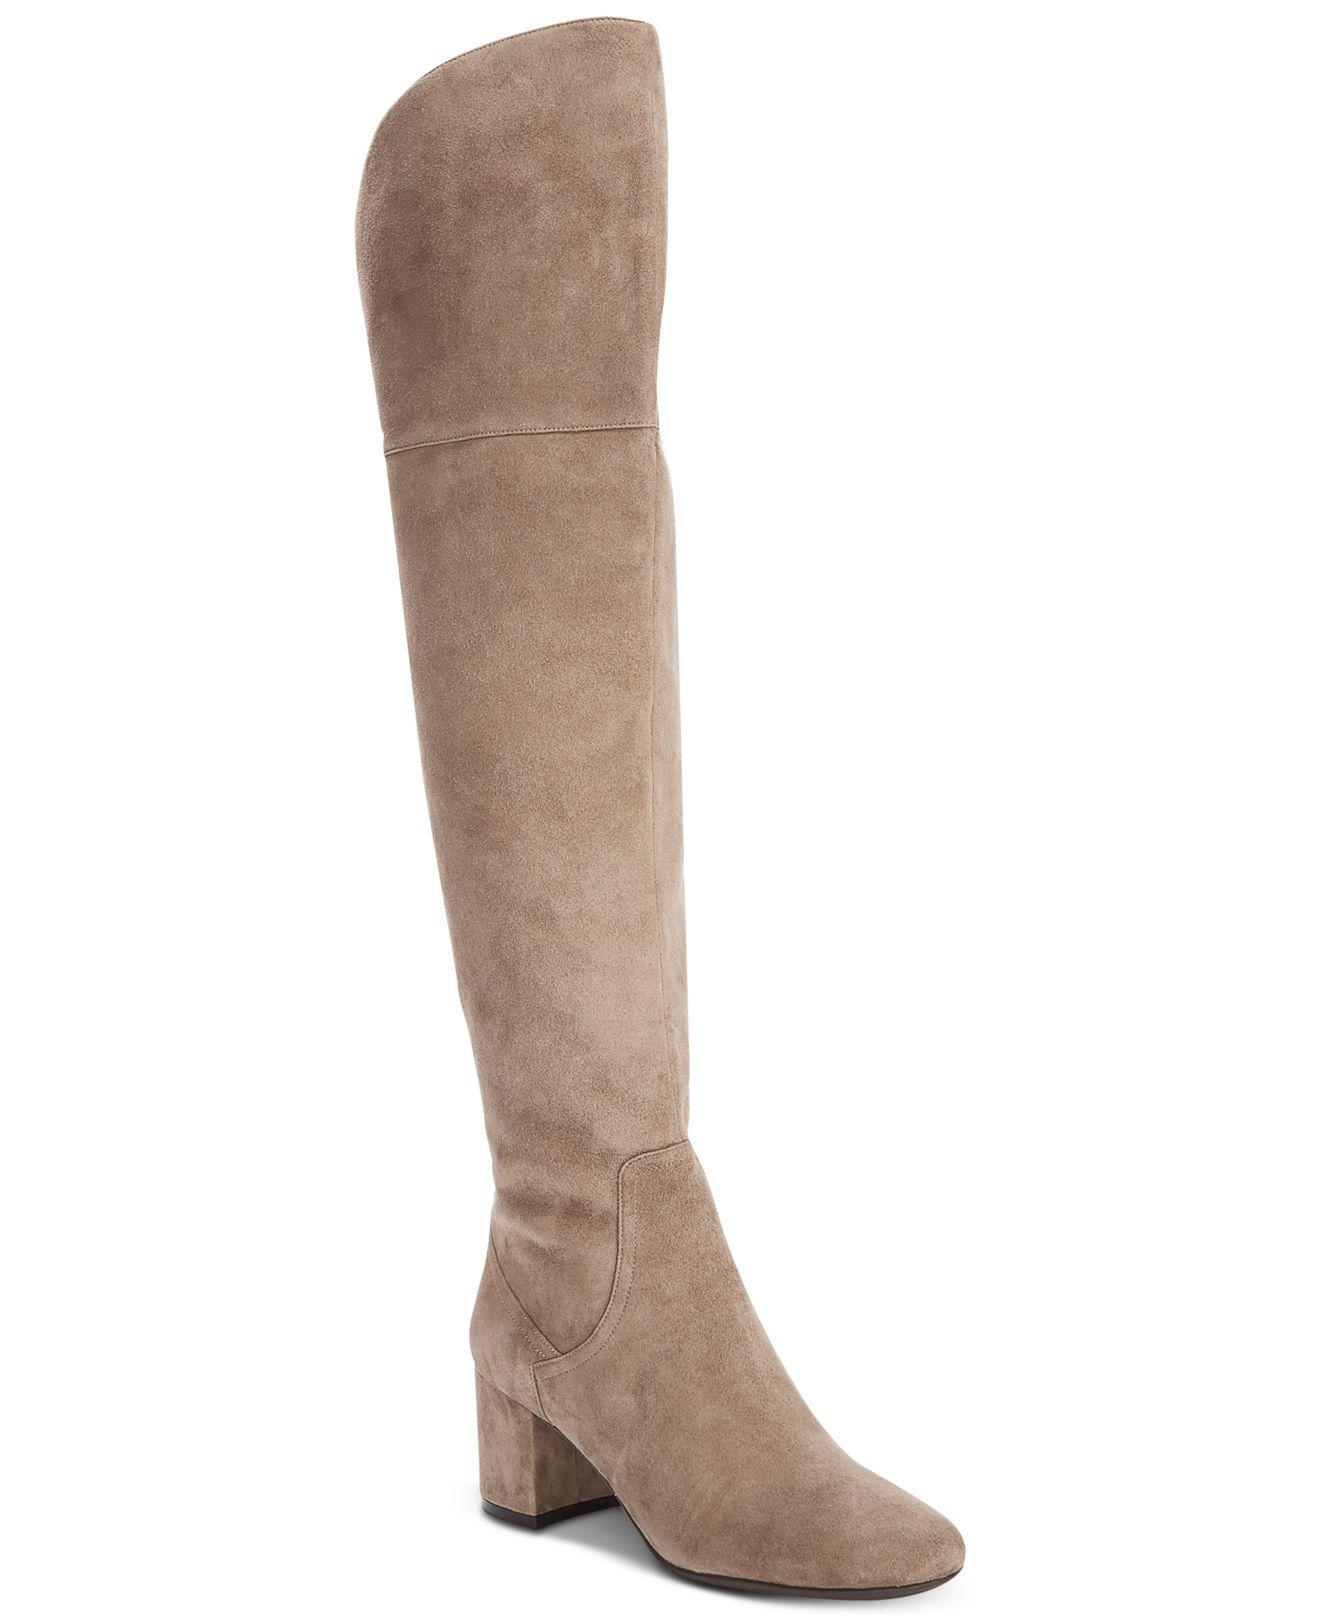 6a3e1e885b0 Lyst - Cole Haan Raina Grand Ii Over-the-knee Boots in Brown